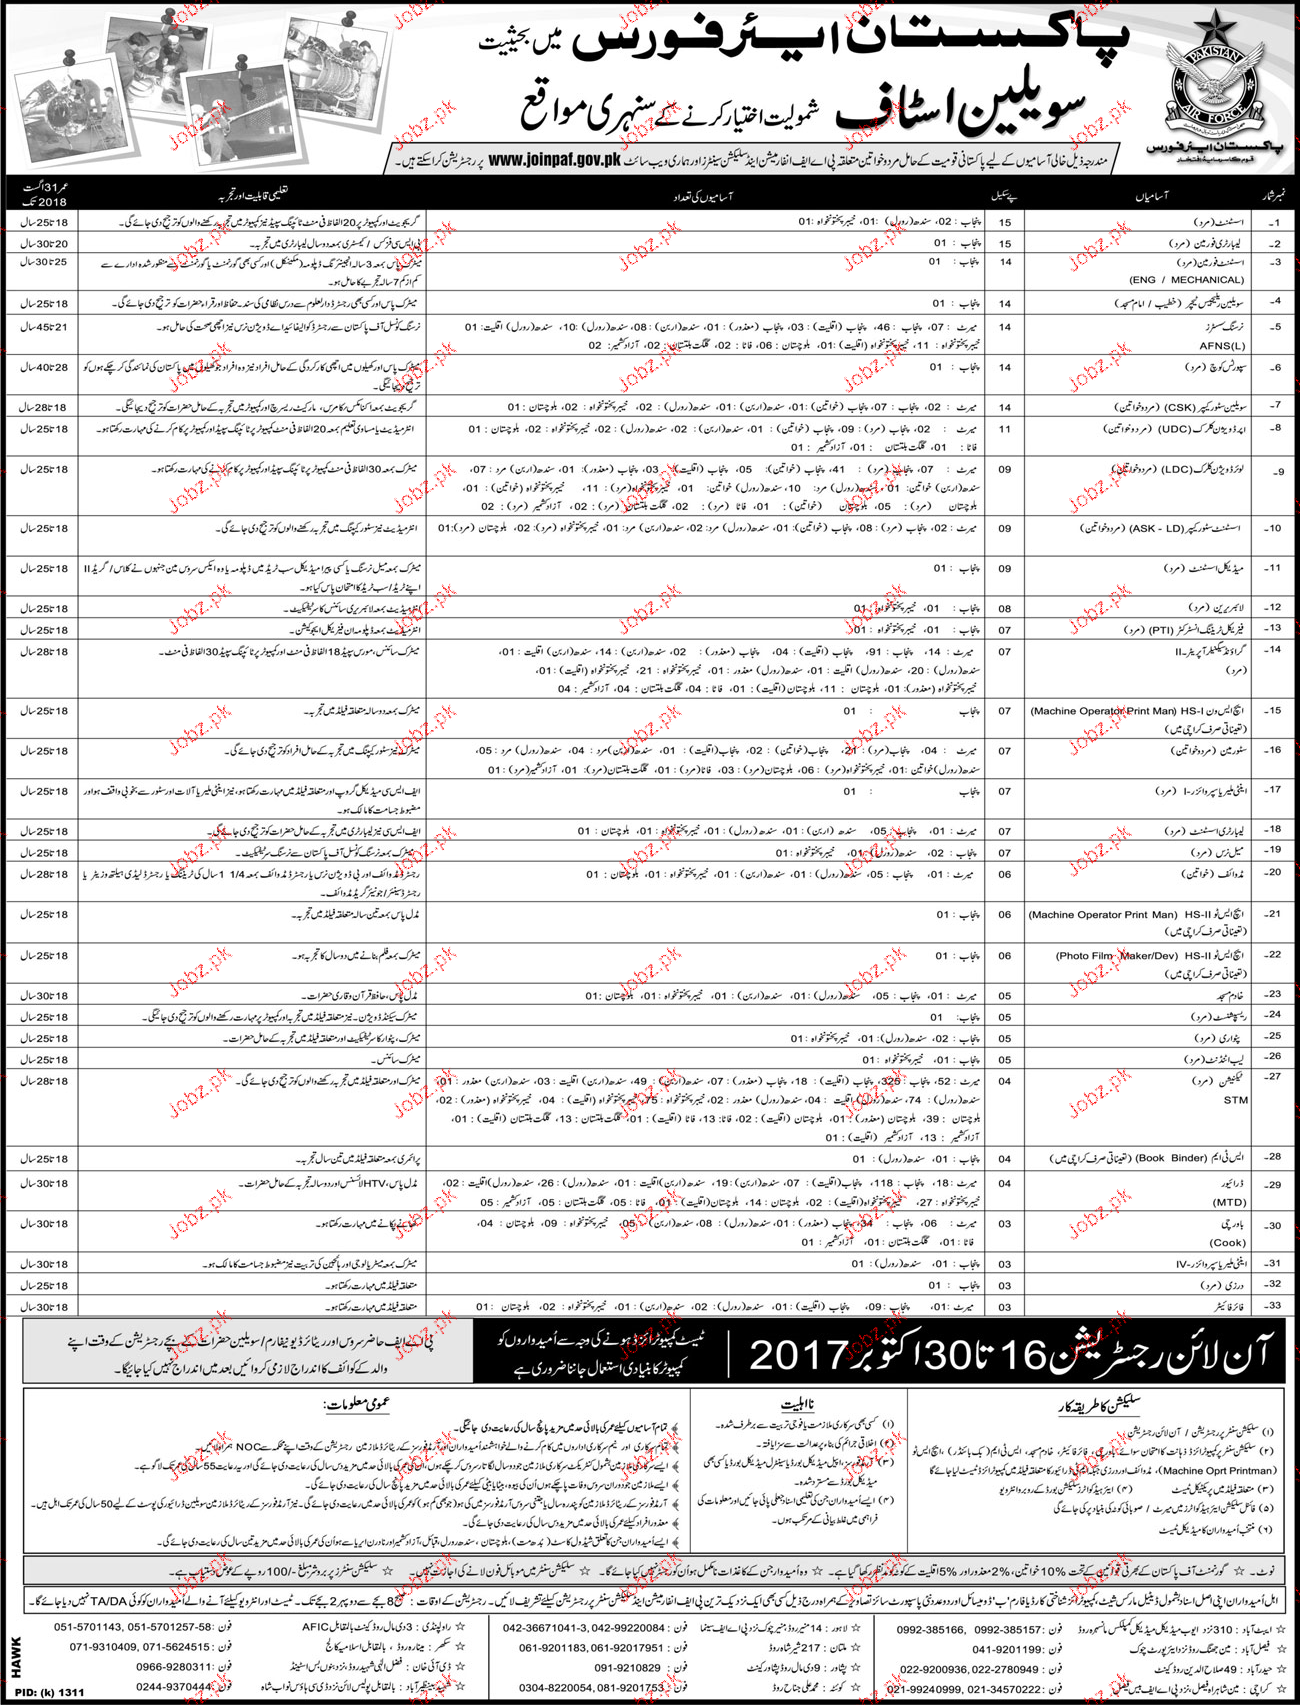 Recruitment of Civilian Staff in Pakistan Air Force PAF